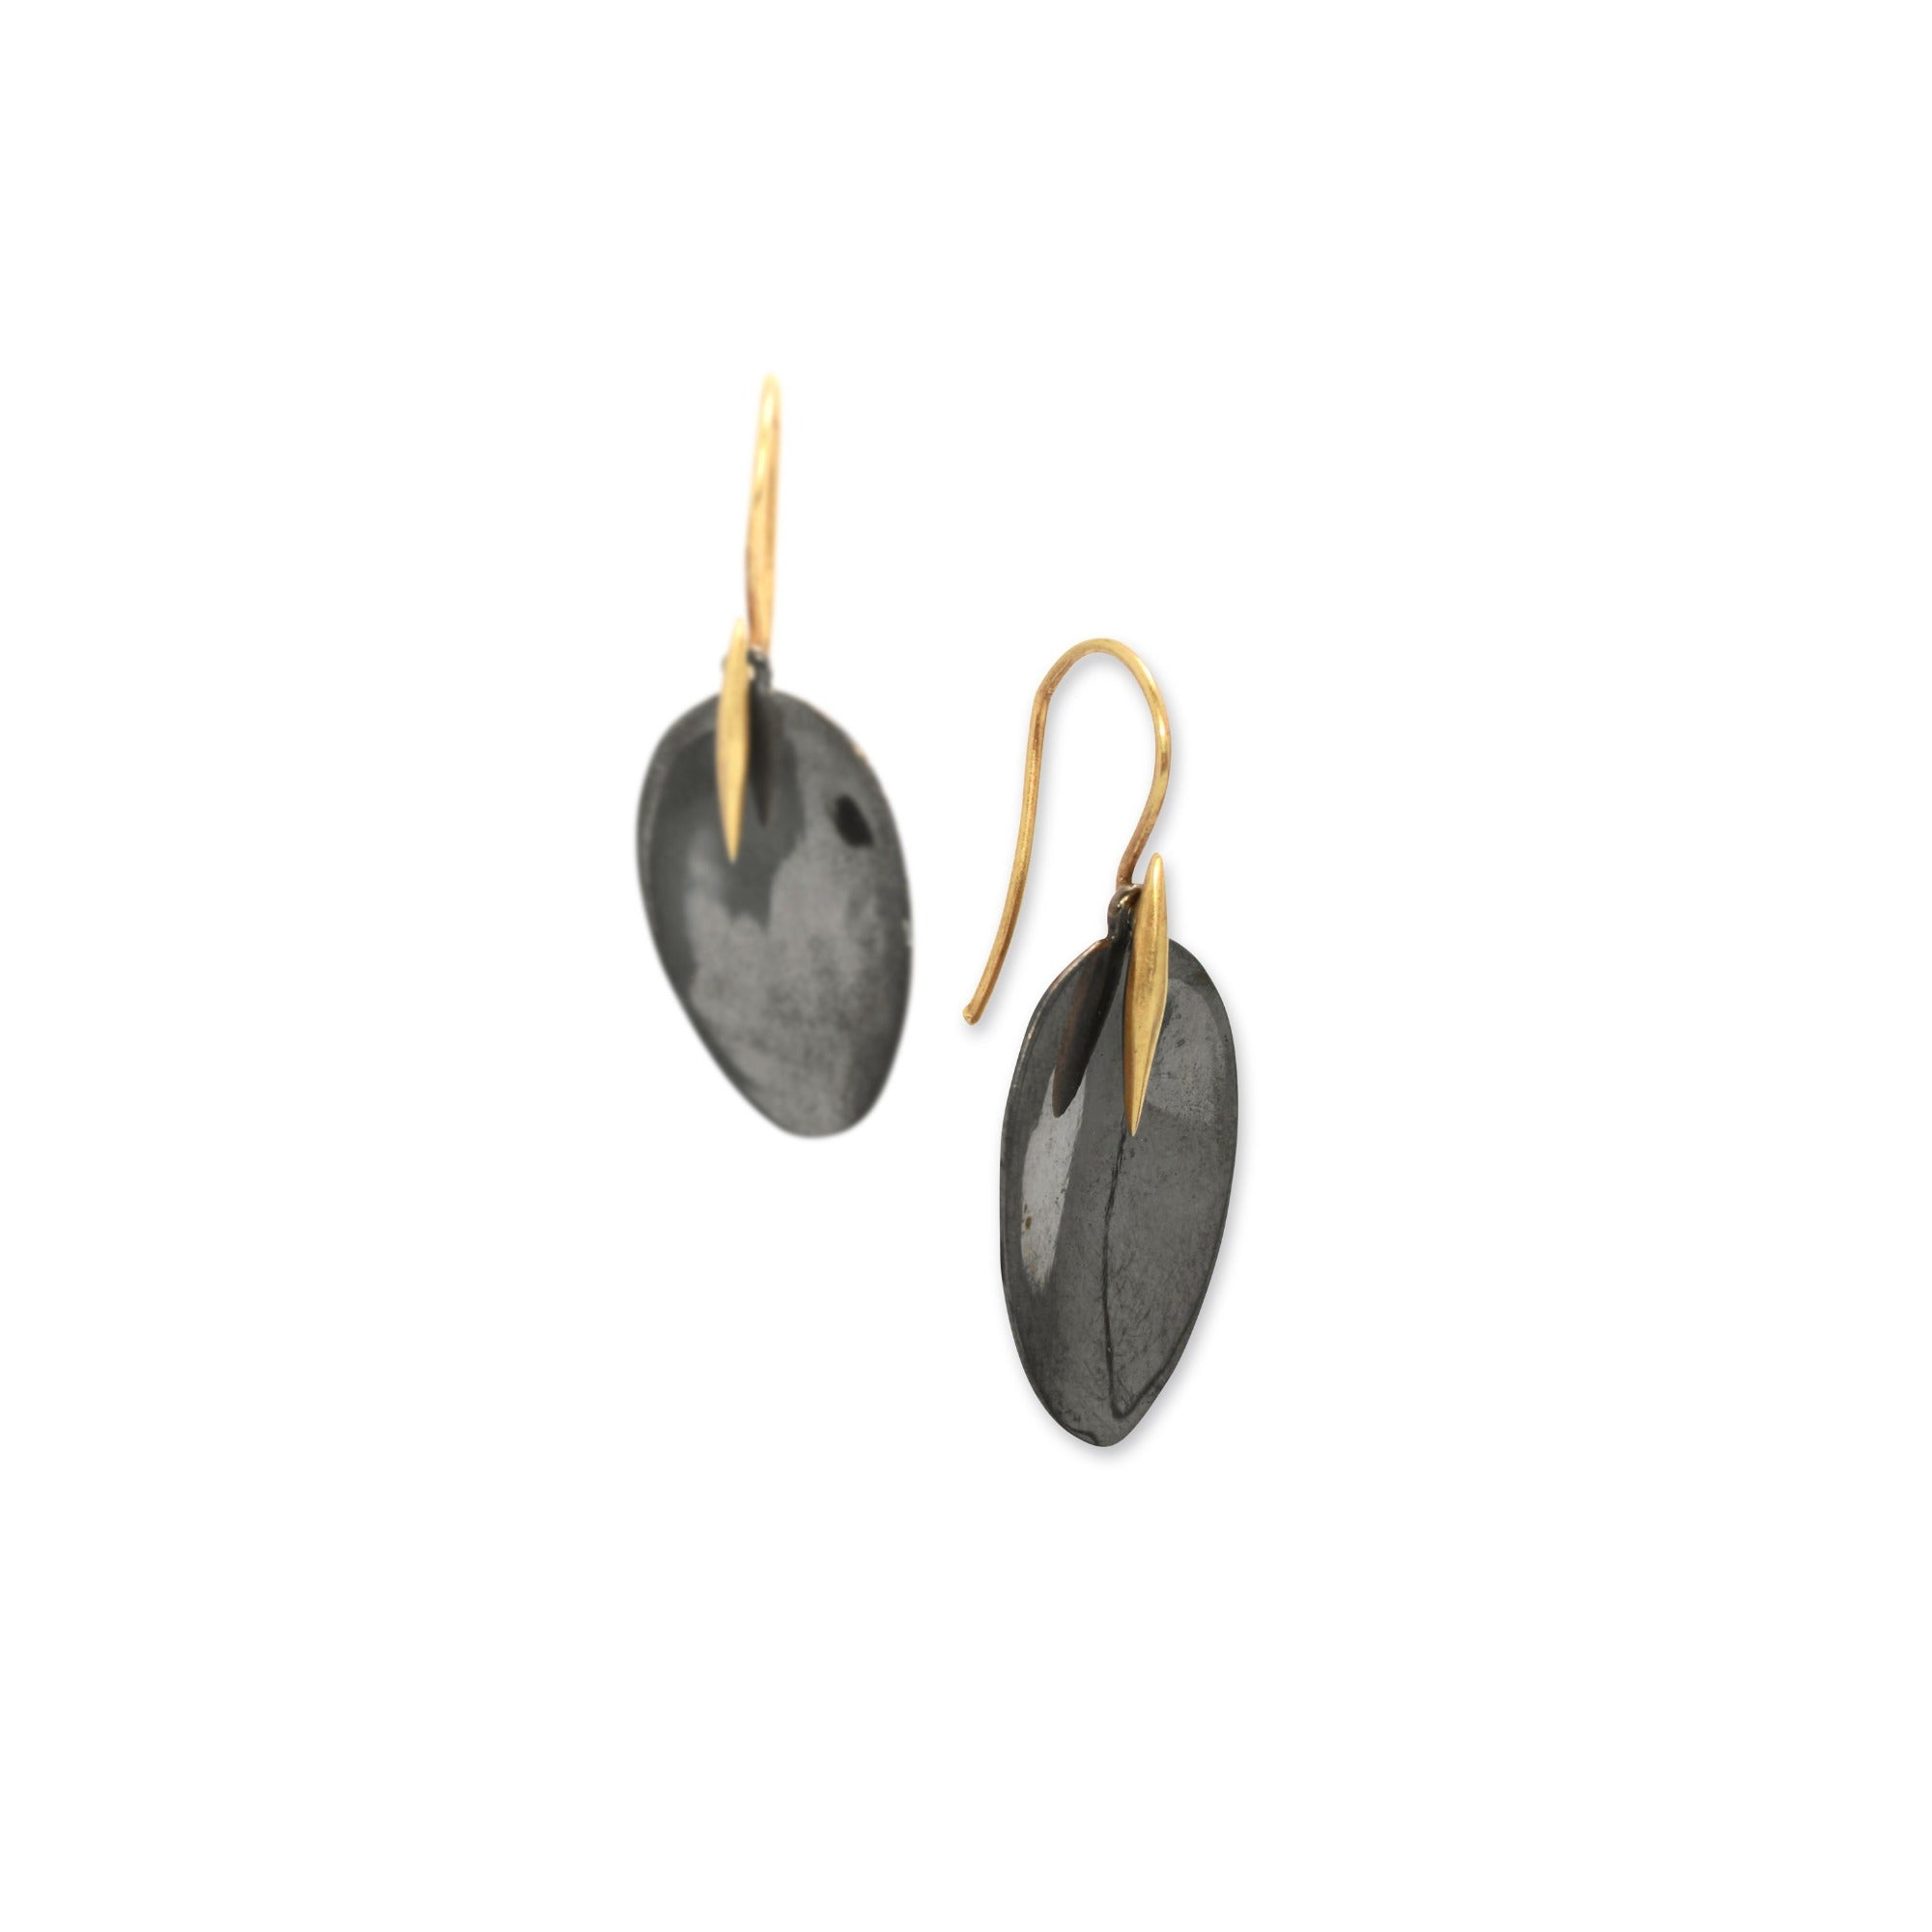 black rhodium with 14k yellow gold point / small petal and point earrings